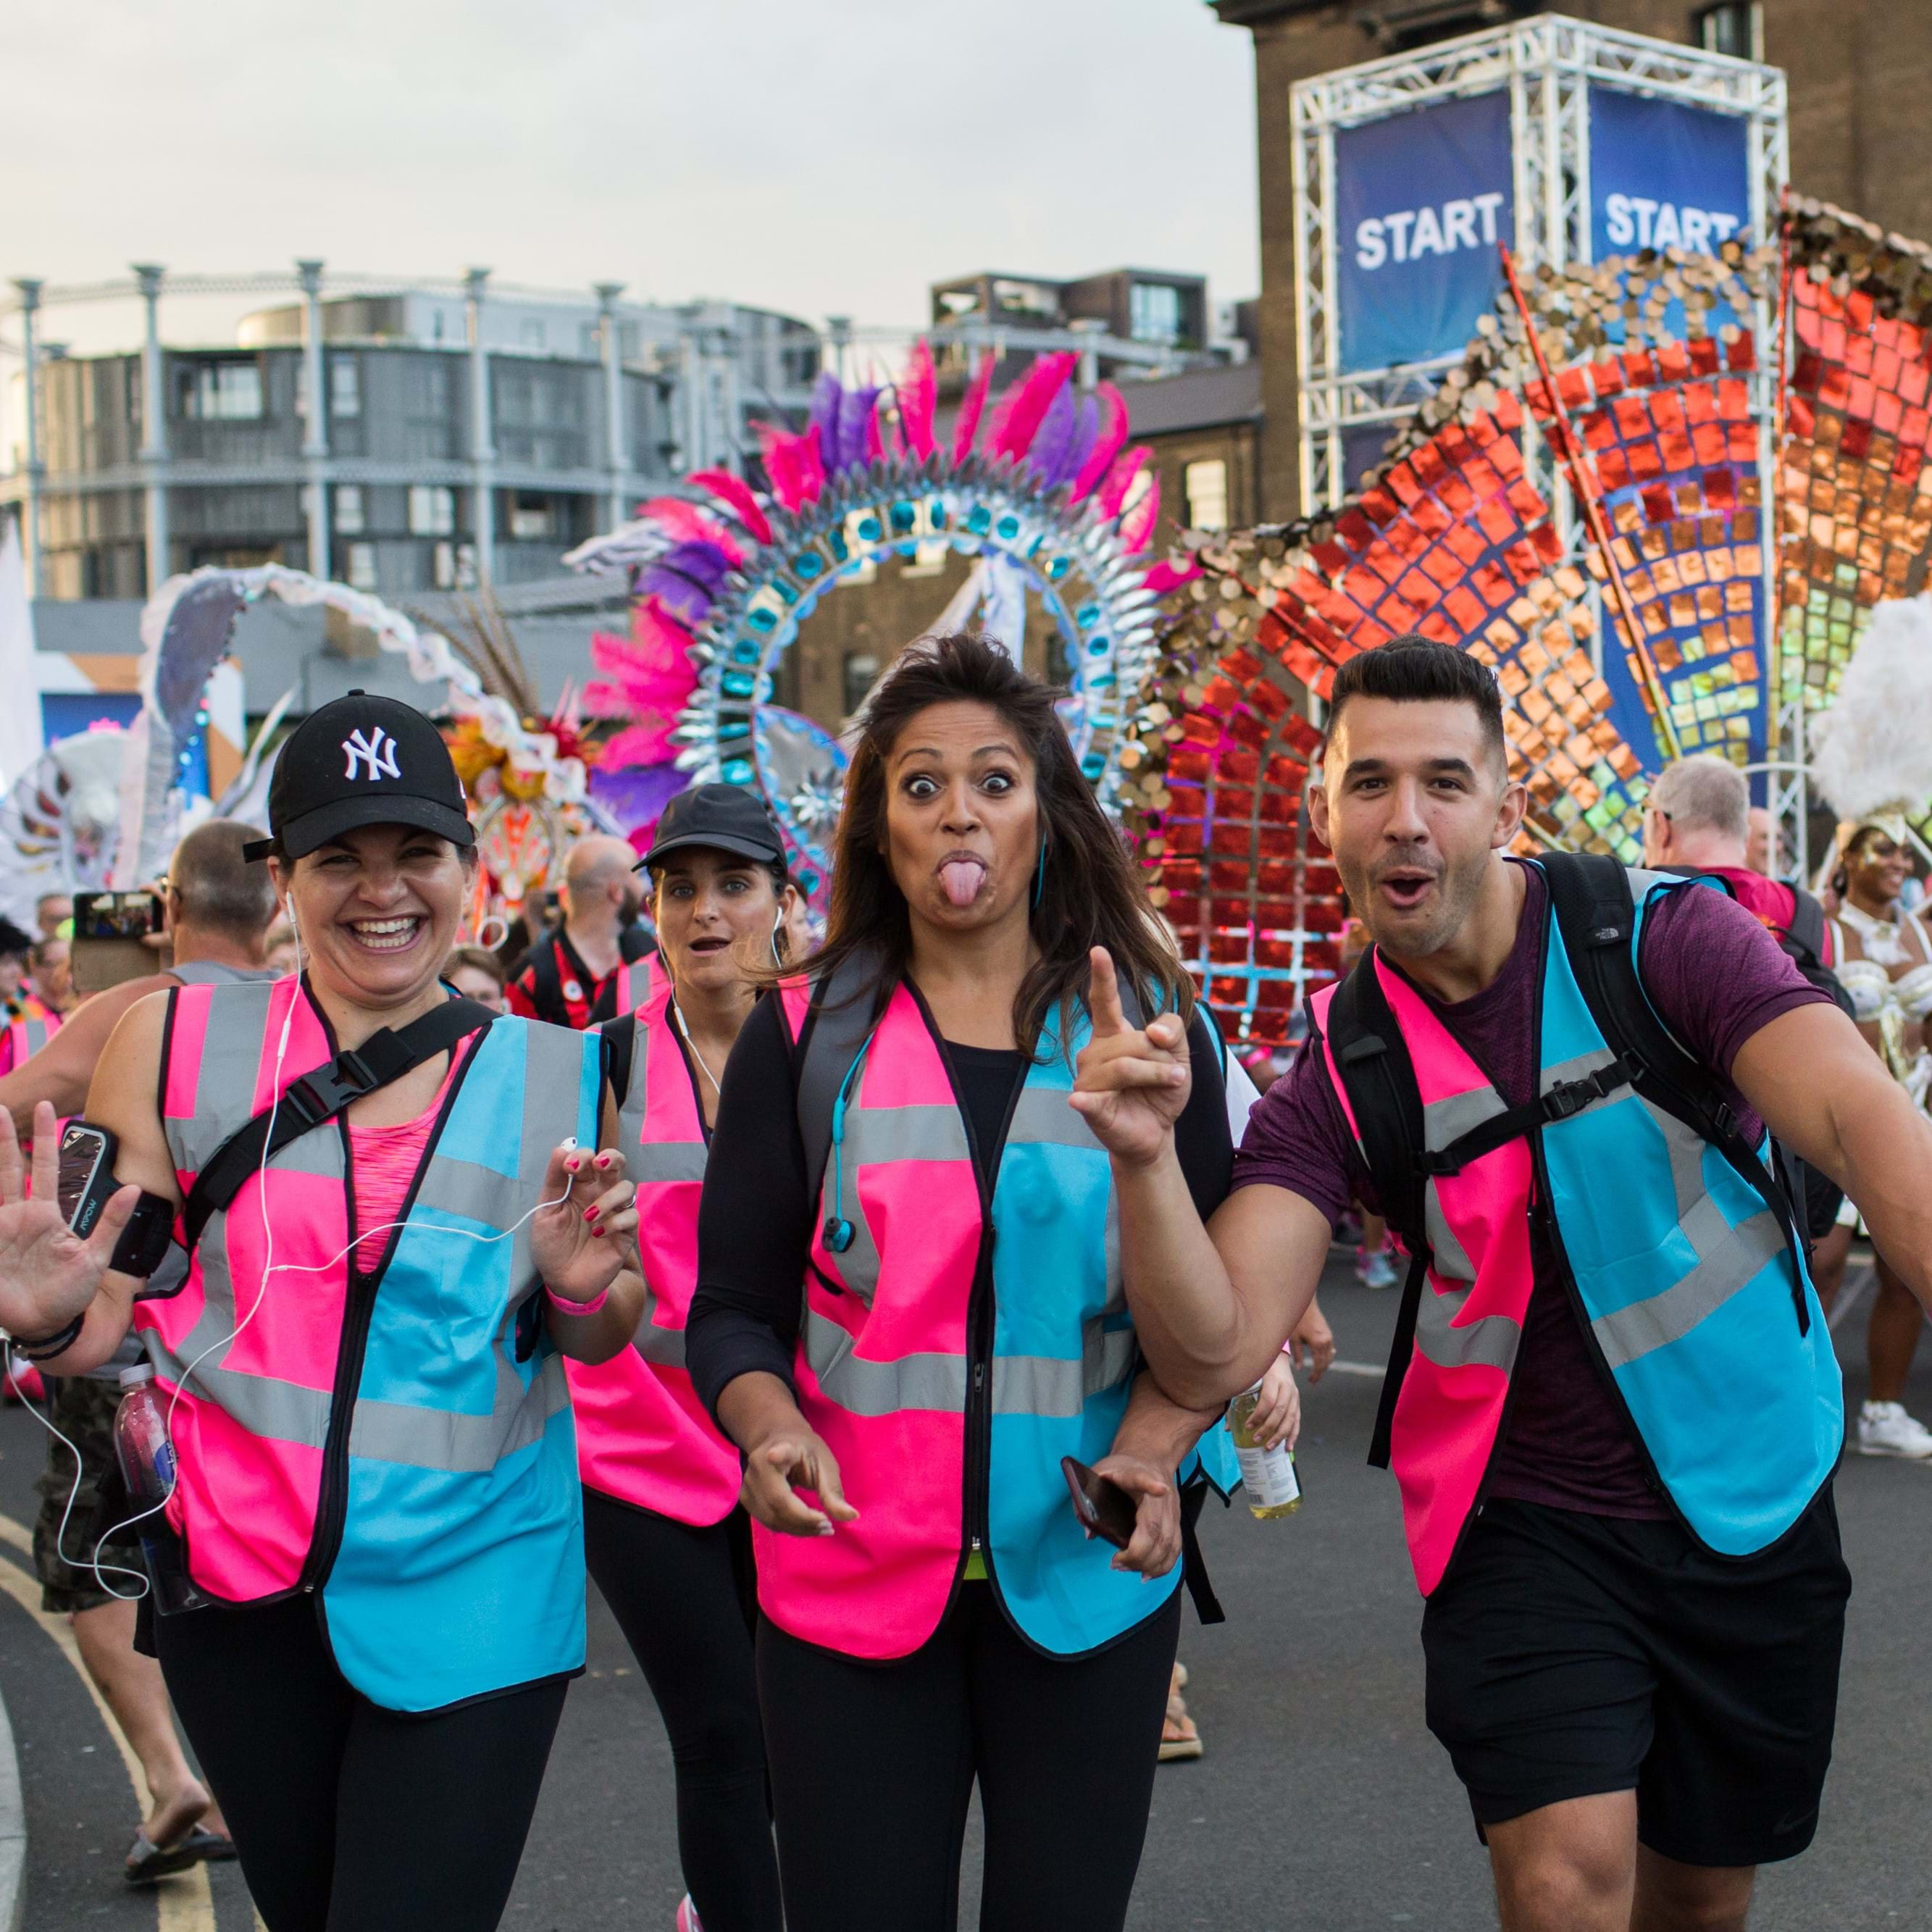 participants setting off from King's Cross for the charity night marathon through London, Walk the Night